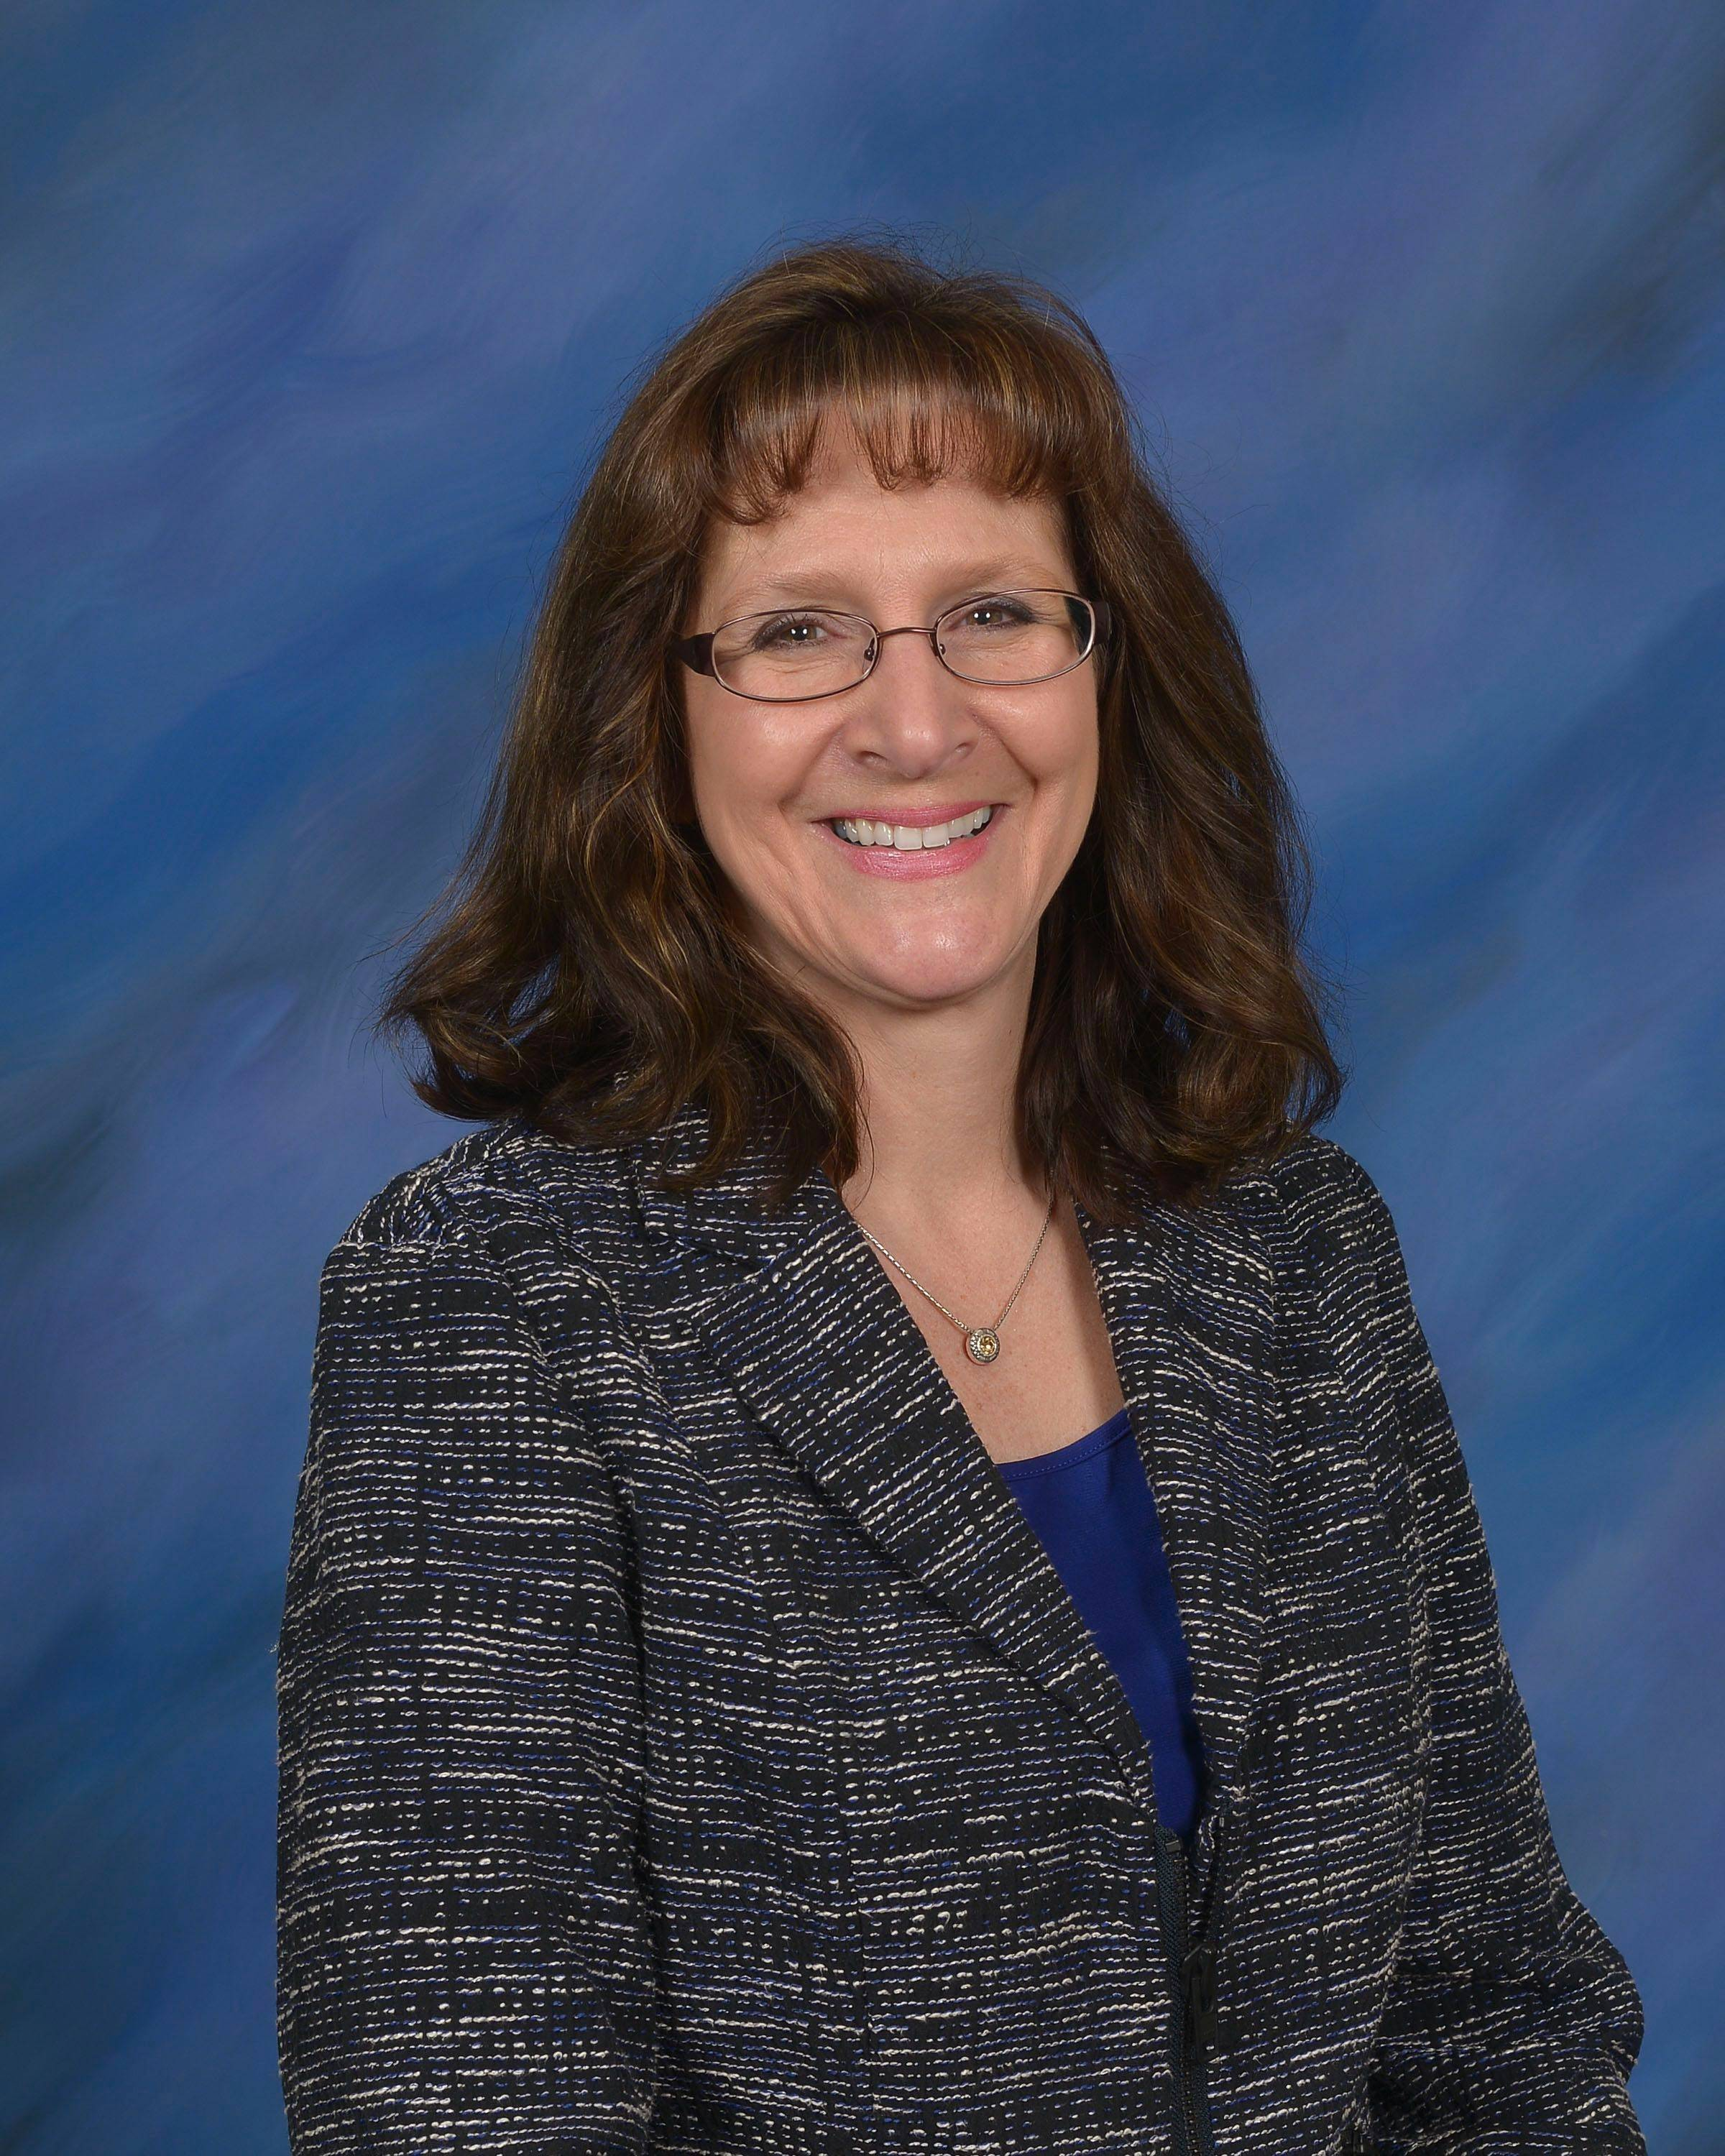 Fremont District 79 Superintendent Jill Gildea is leaving at the end of the school year to take over the 8,800-student Greenwich Public Schools system in Connecticut.